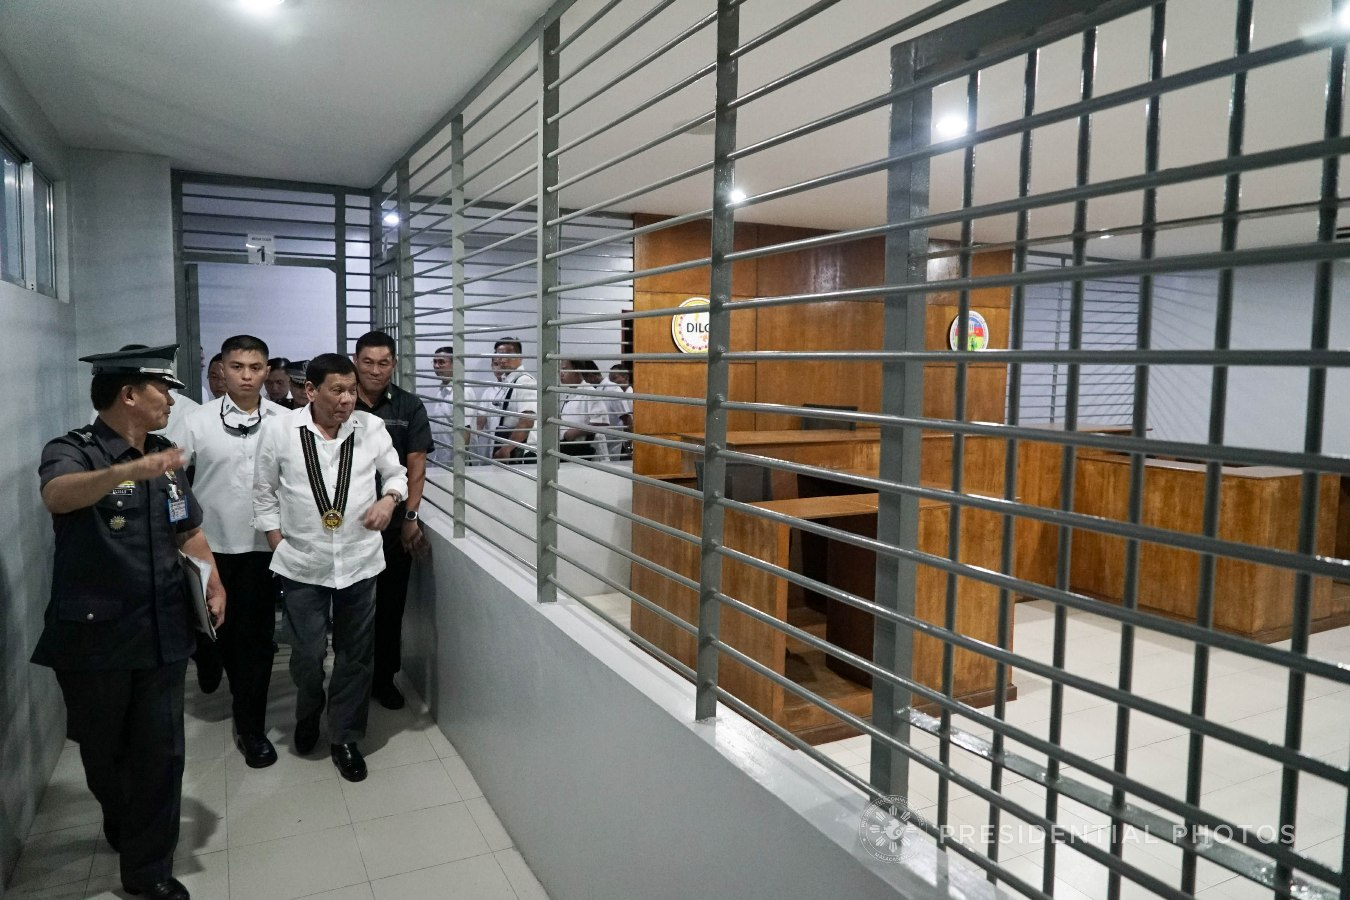 President Rodrigo Roa Duterte inspects the facilities of the Bureau of Jail Management and Penology (BJMP) during his visit at Camp Bagong Diwa in Taguig City on October 18, 2017. KING RODRIGUEZ/PRESIDENTIAL PHOTO